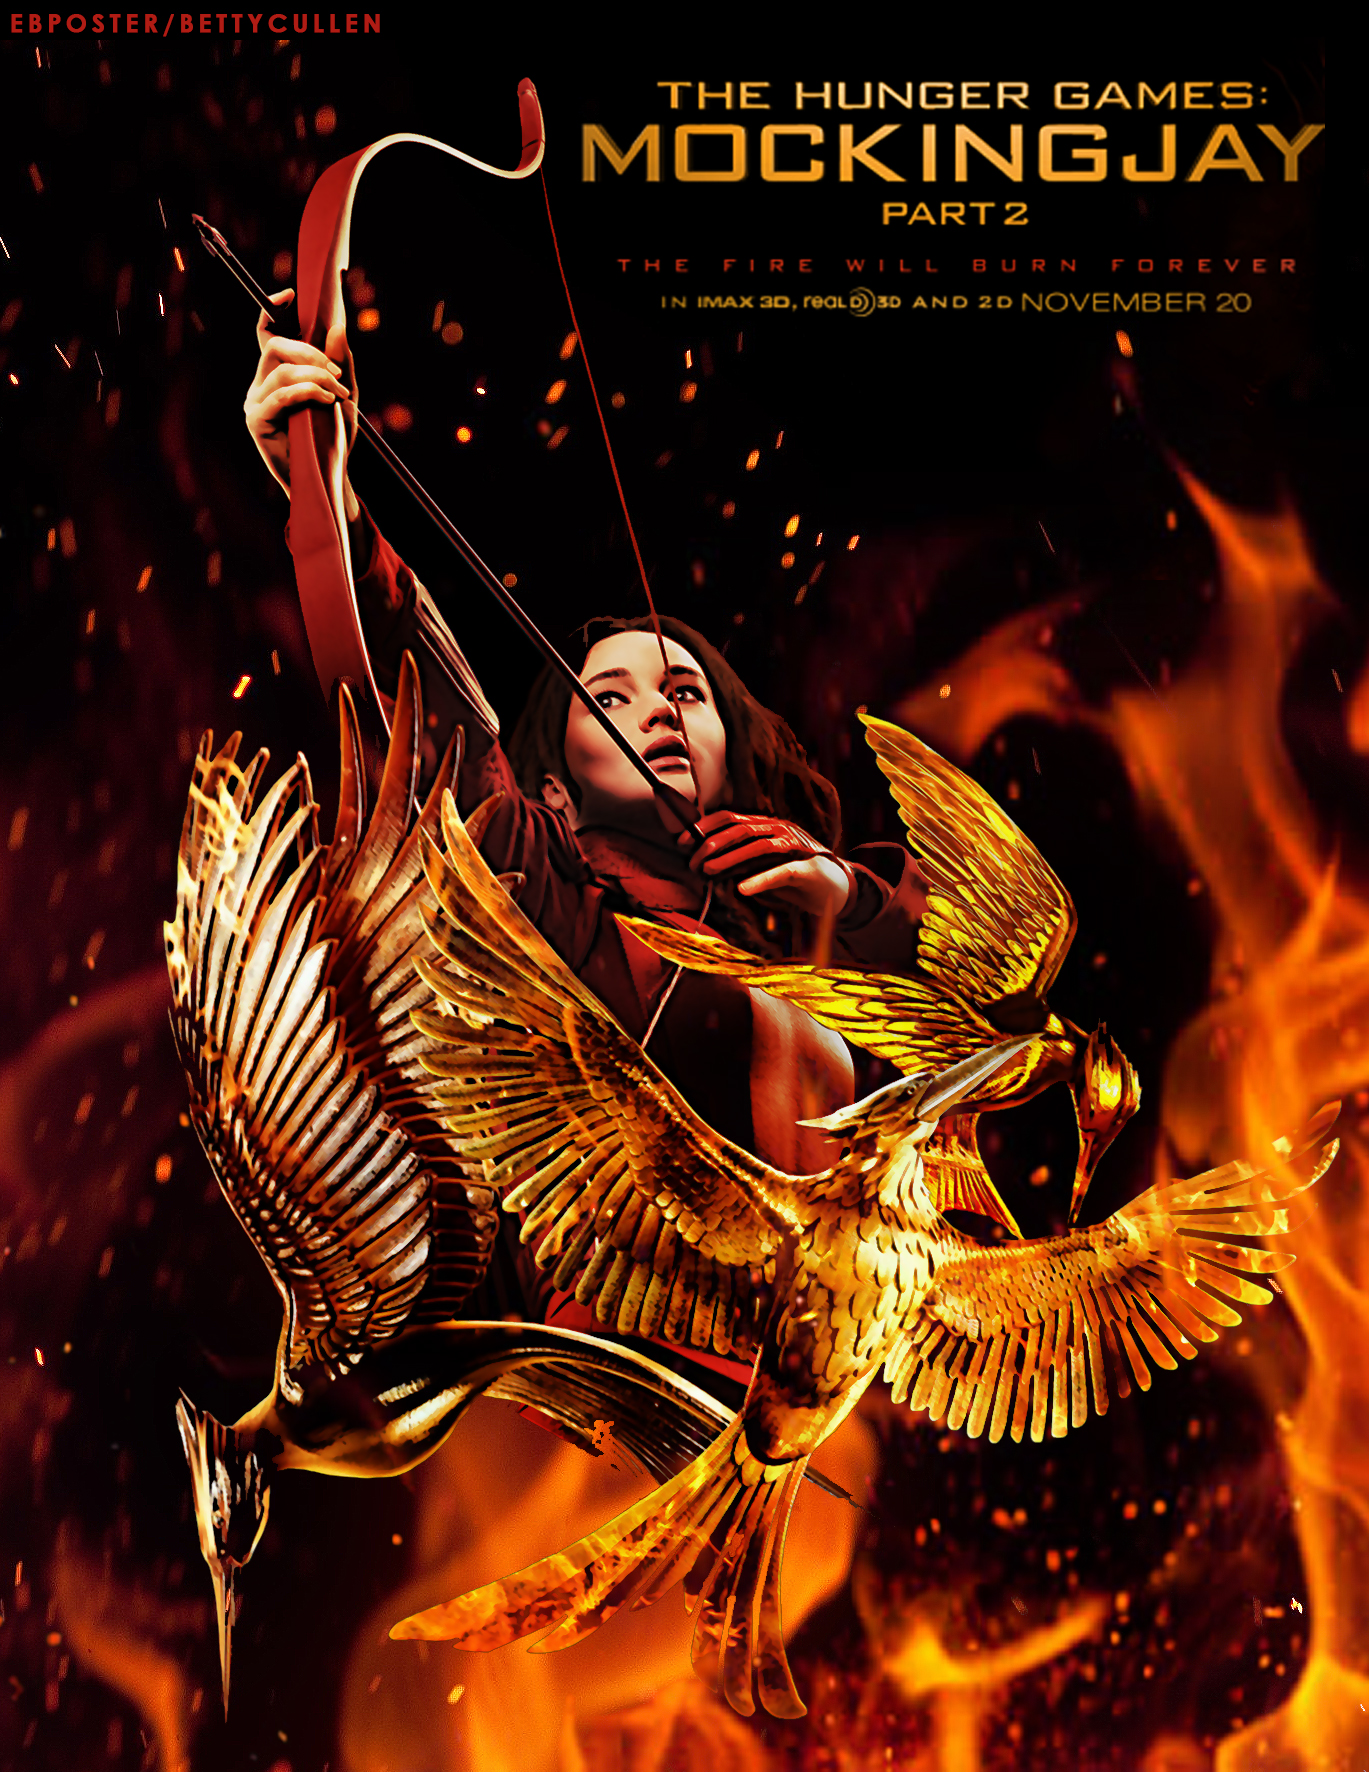 The Hunger Games Trilogy Abstract Poster The Hunger